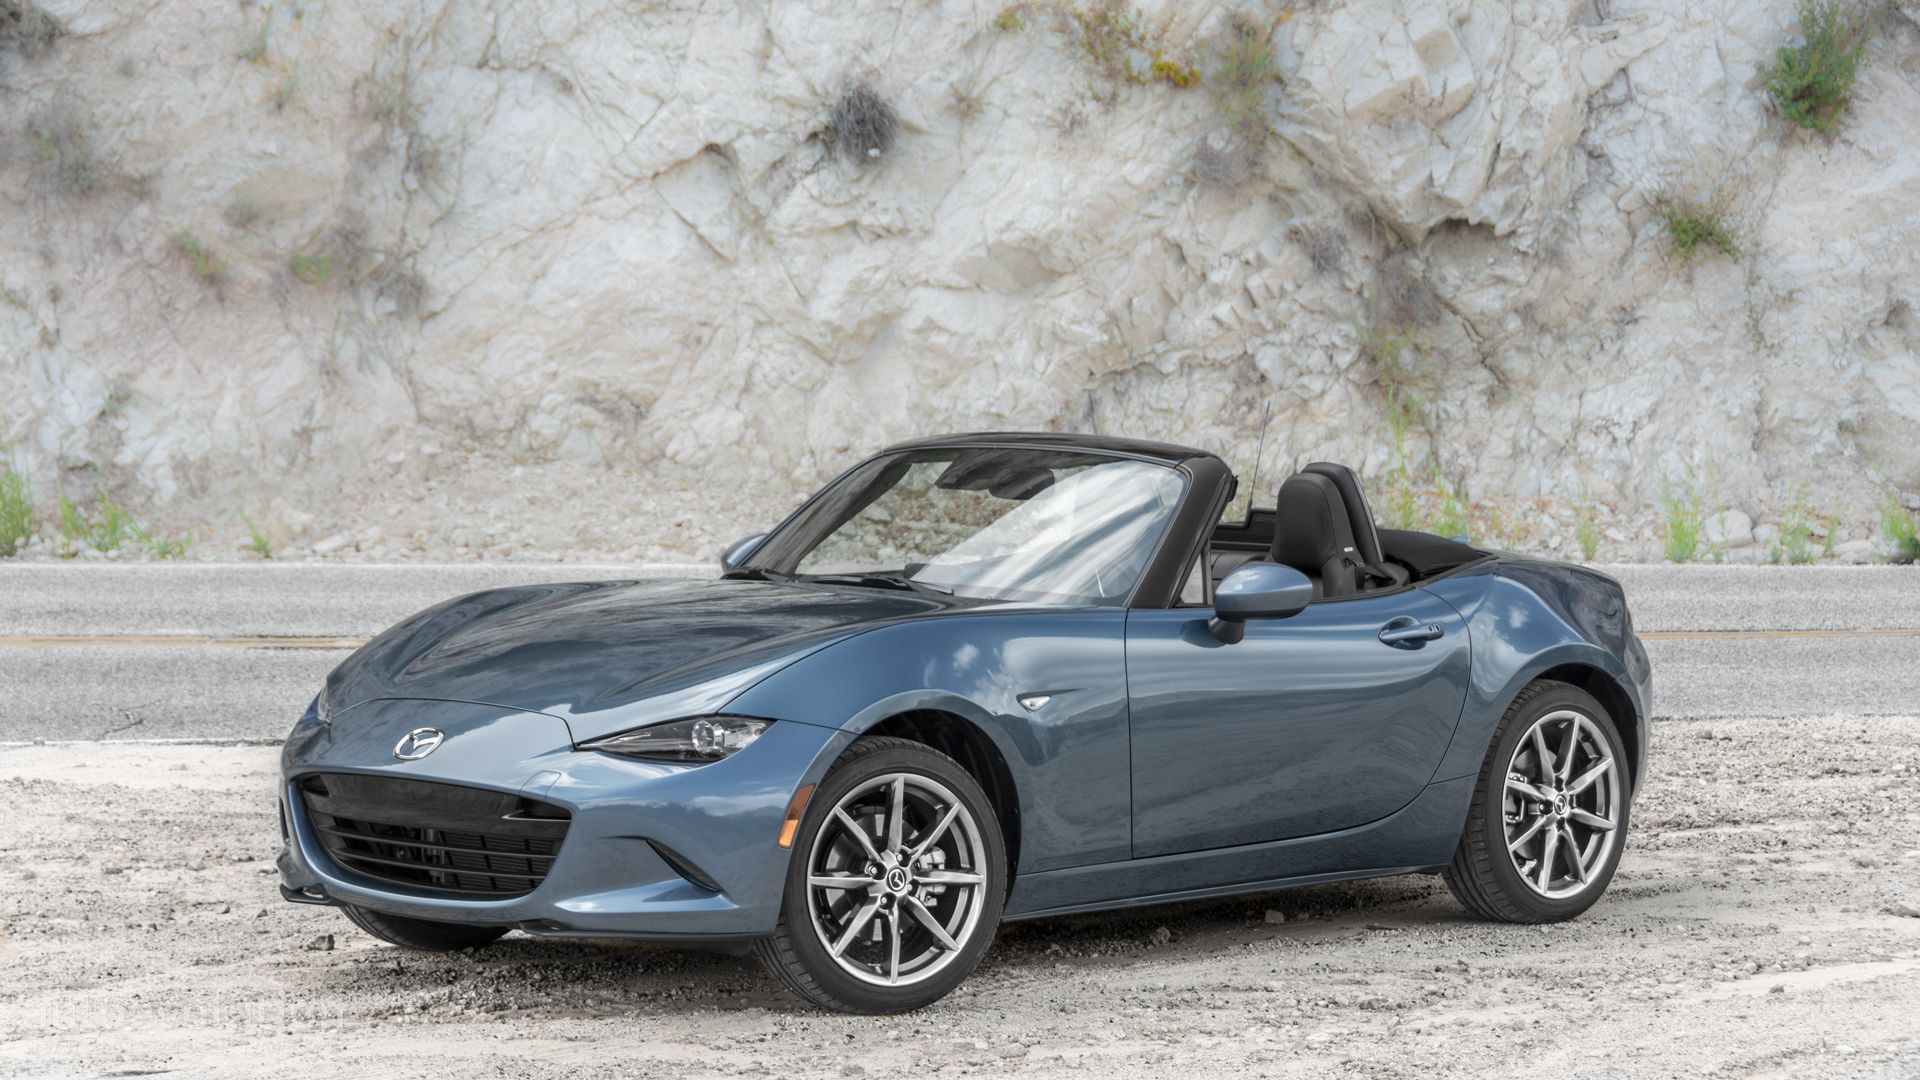 2016 mazda mx-5 miata review - autoevolution